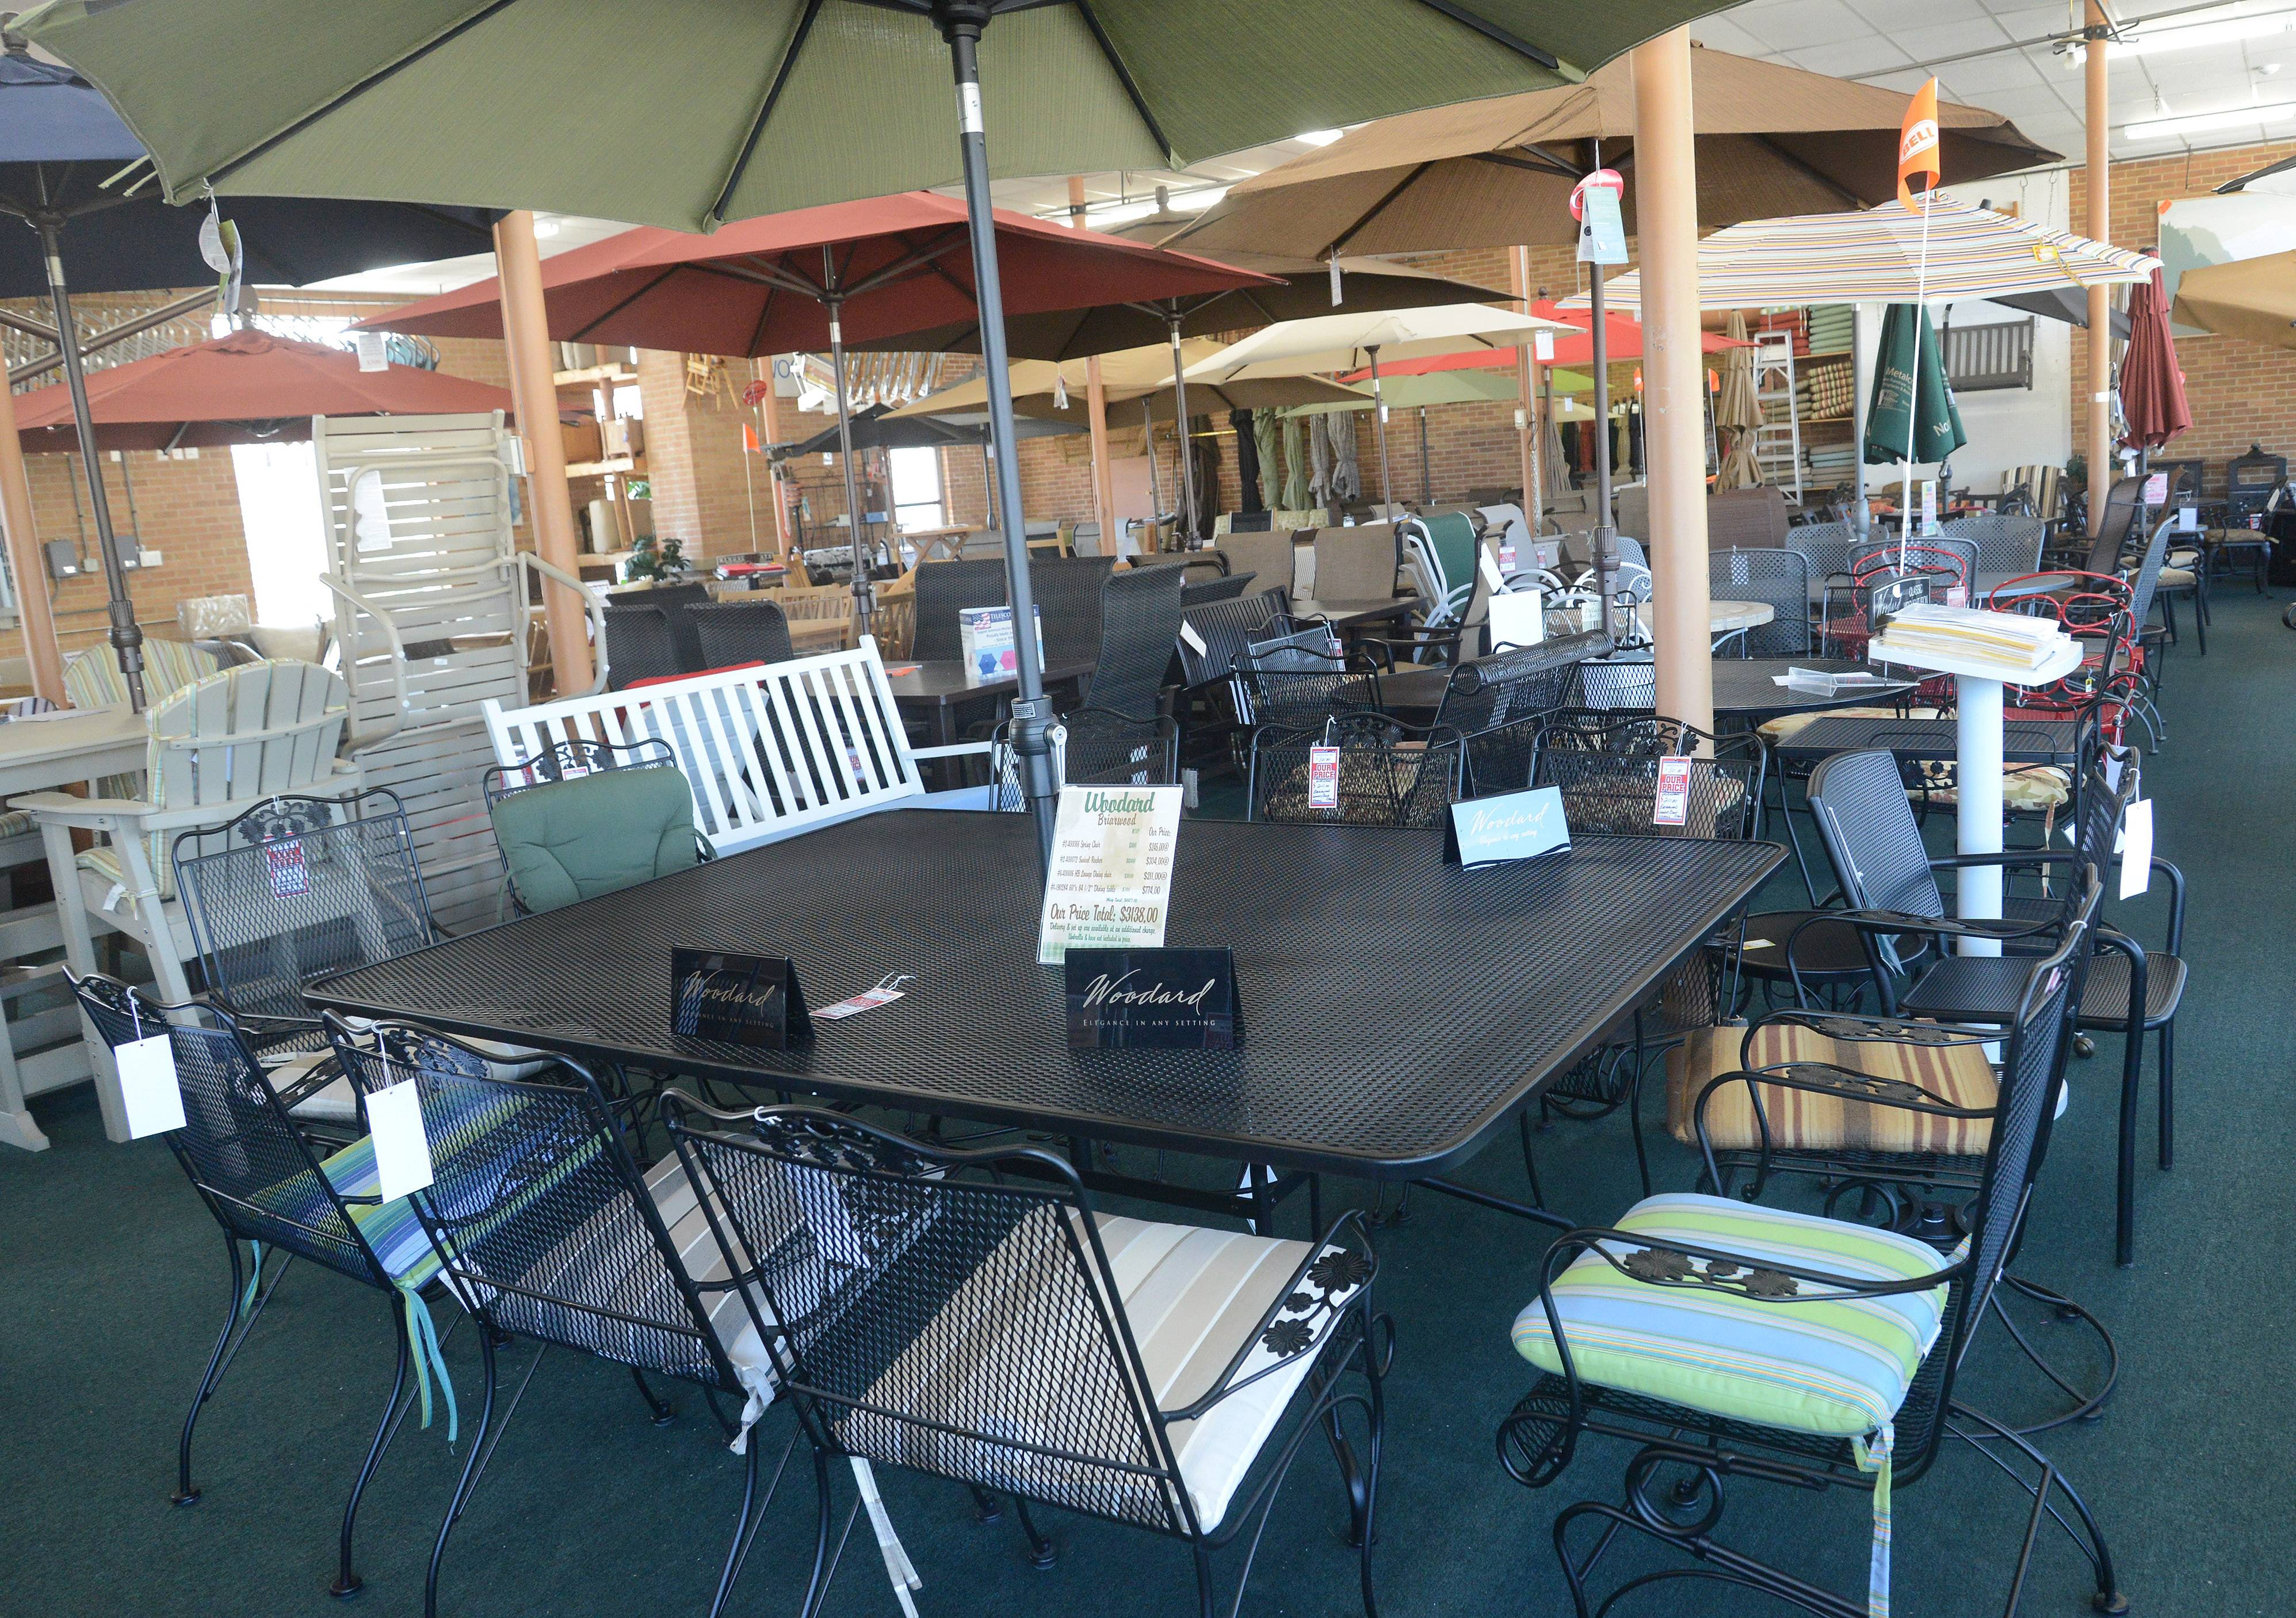 After all that great cooking, you'll want enough seating for everyone. Northwest Metalcraft offers dining sets with umbrellas big enough to cover the furniture.